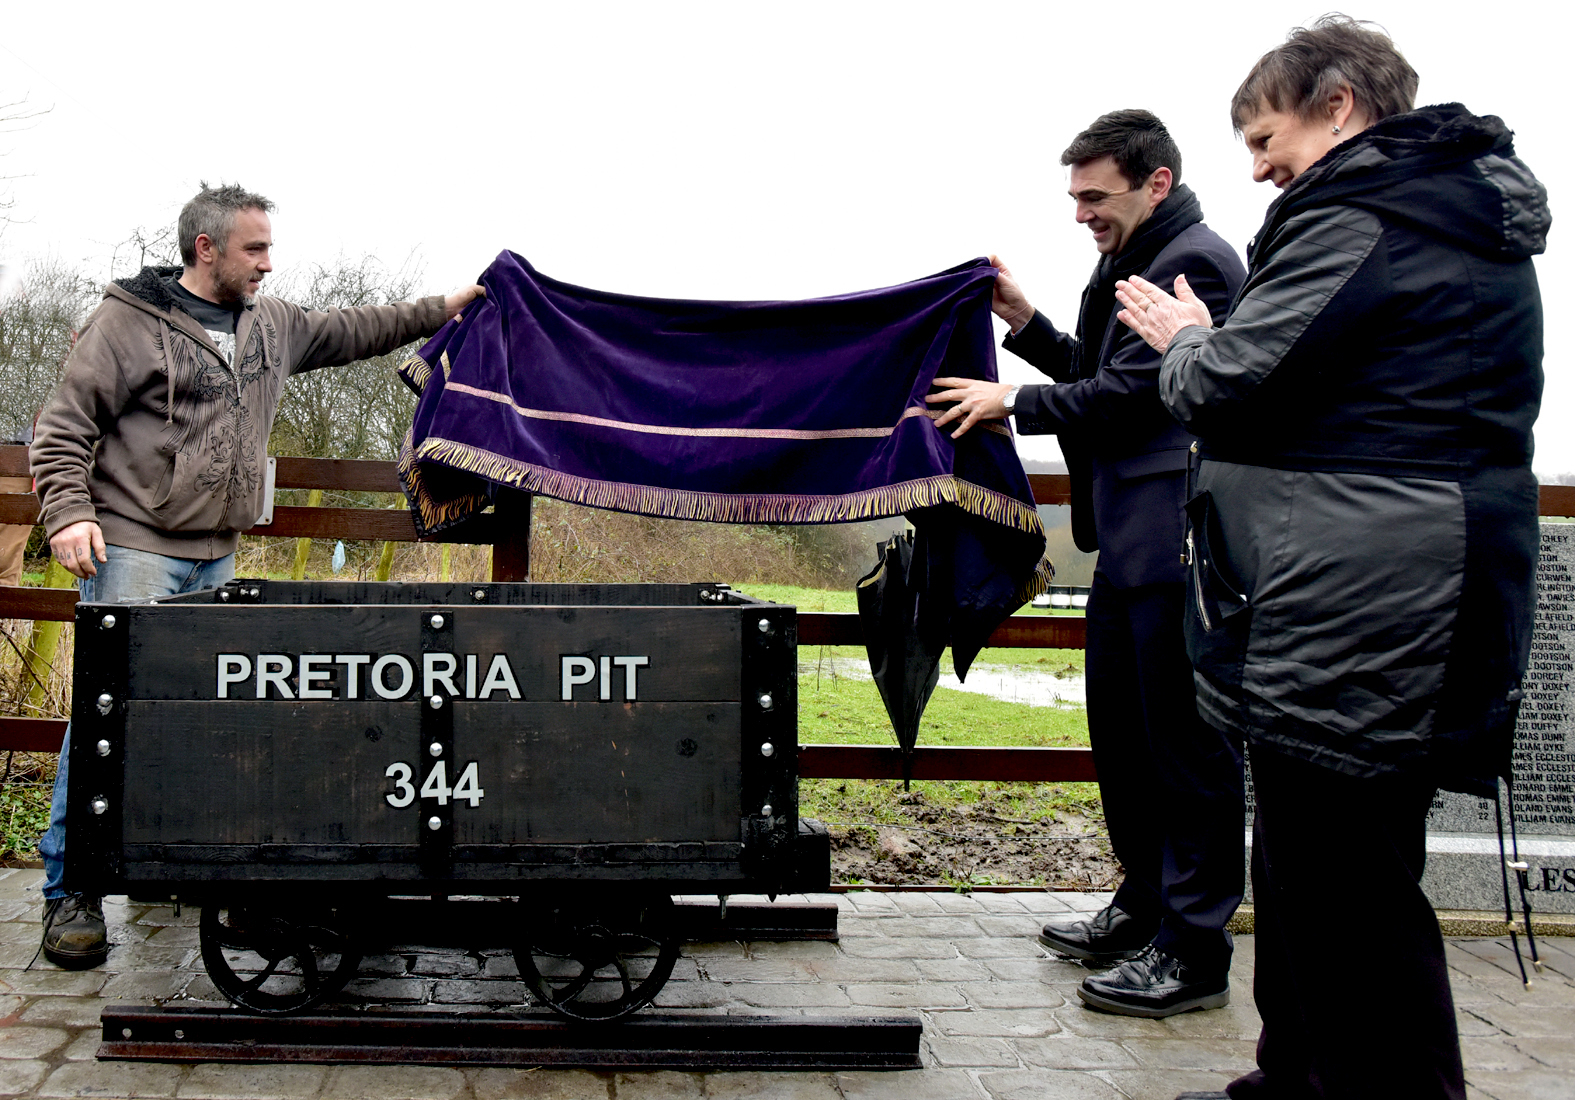 UNVEILING:Sculptor Darren Block, Mayor of Greater Manchester Andy Burnham and Julie Hilling at the unveiling of a replica coal truck at Pretoria Pit memorial